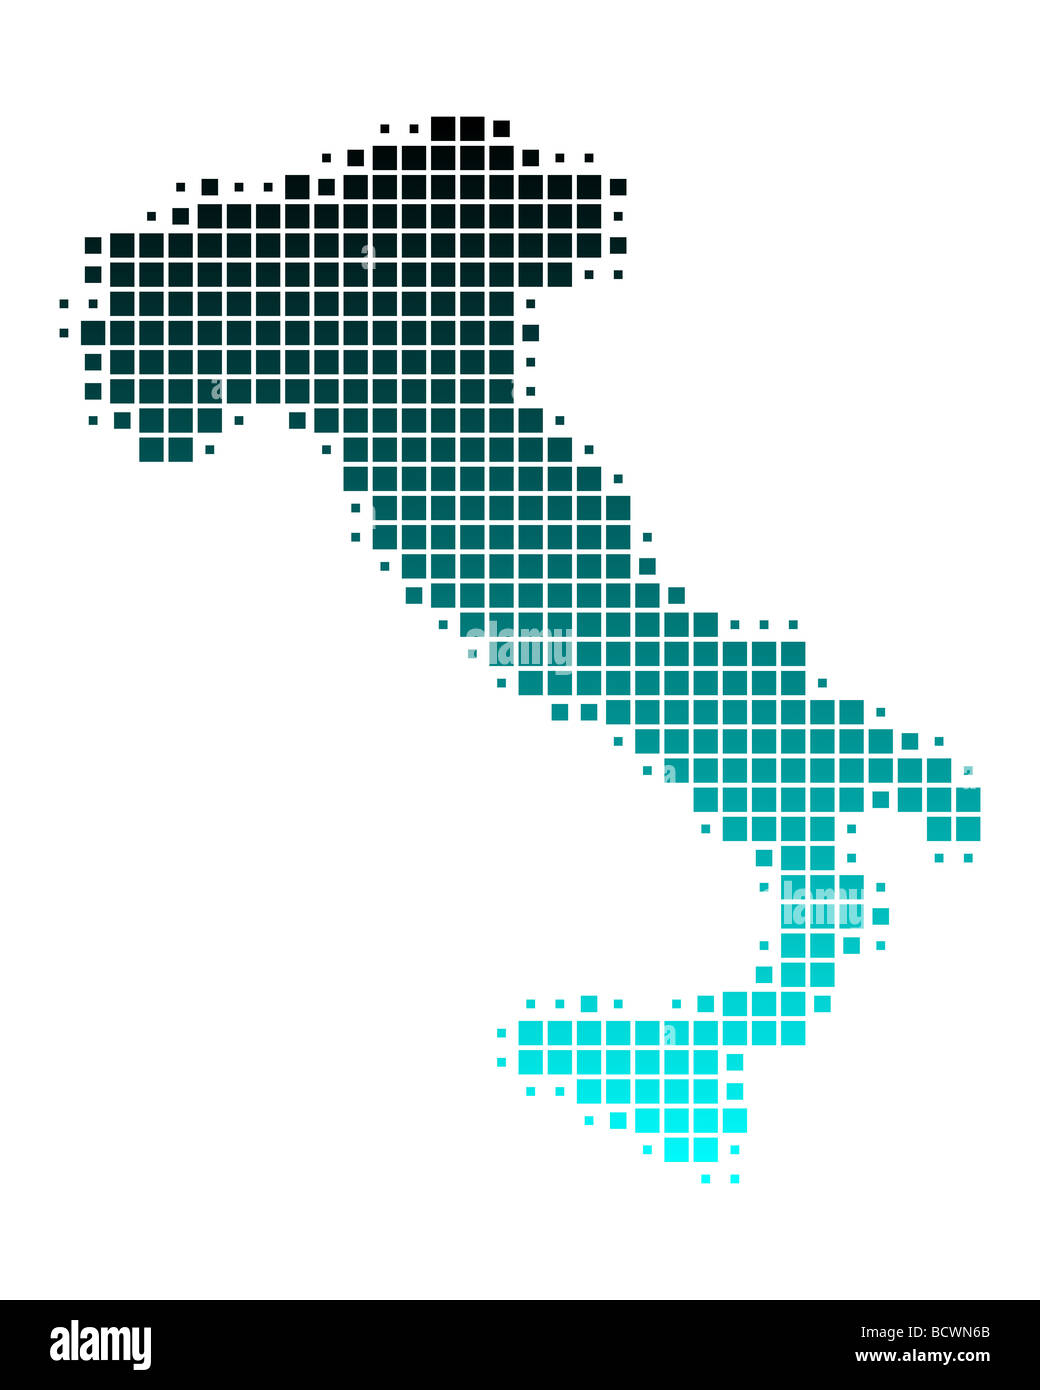 Map of Italy - Stock Image